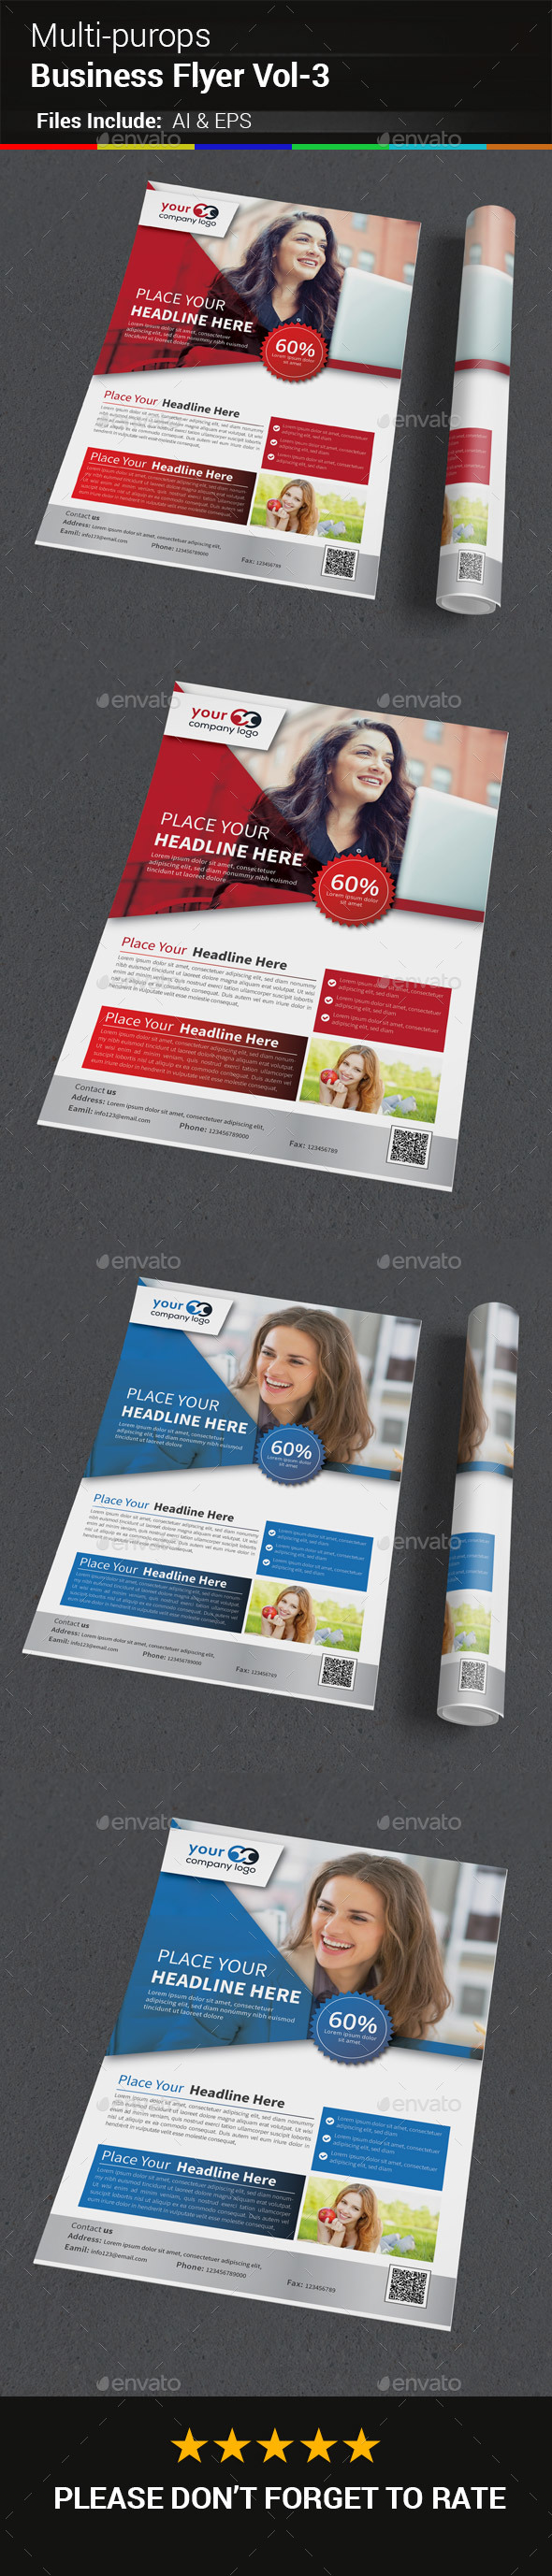 GraphicRiver Multipurops Business Flyer Vol-3 20411232